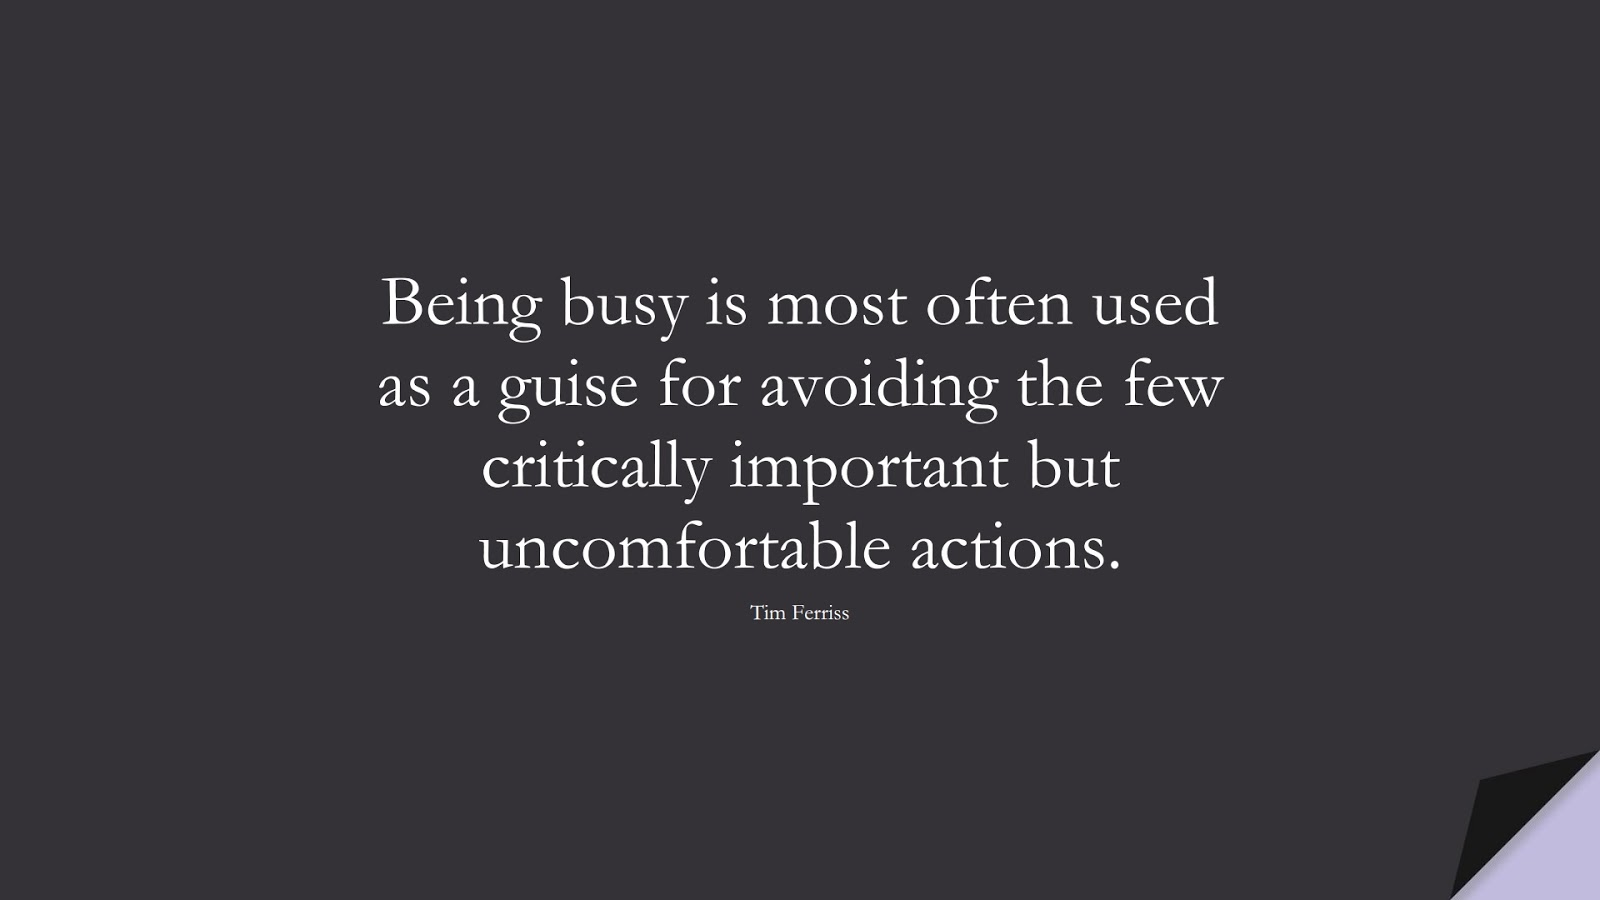 Being busy is most often used as a guise for avoiding the few critically important but uncomfortable actions. (Tim Ferriss);  #CharacterQuotes